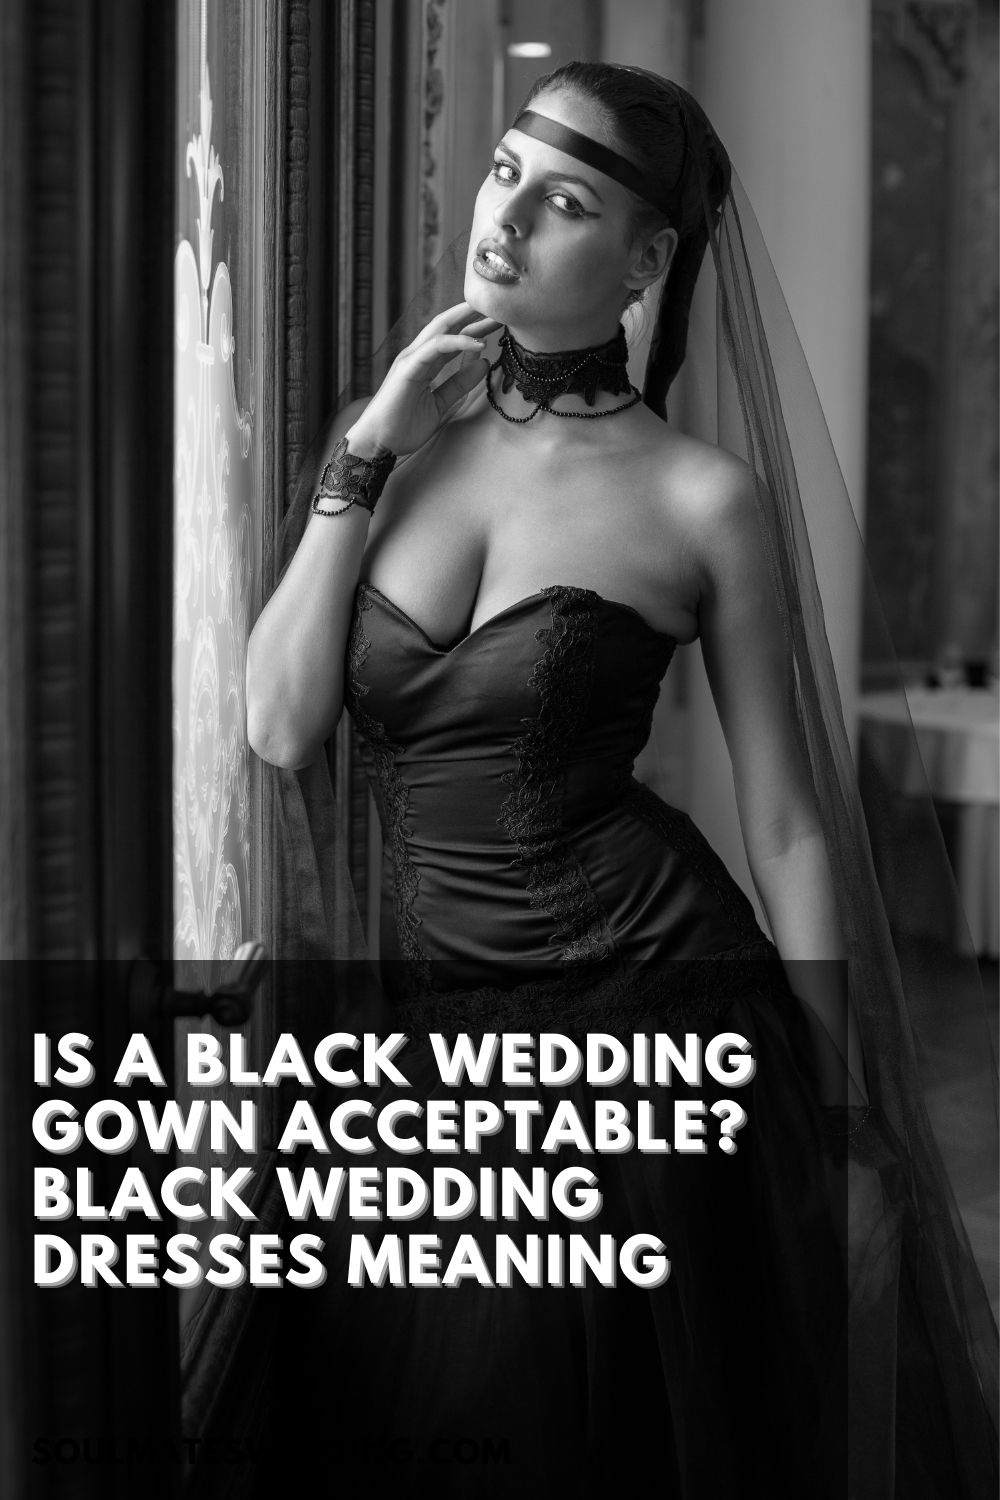 Is a Black wedding gown acceptable? Black Wedding Dresses Meaning